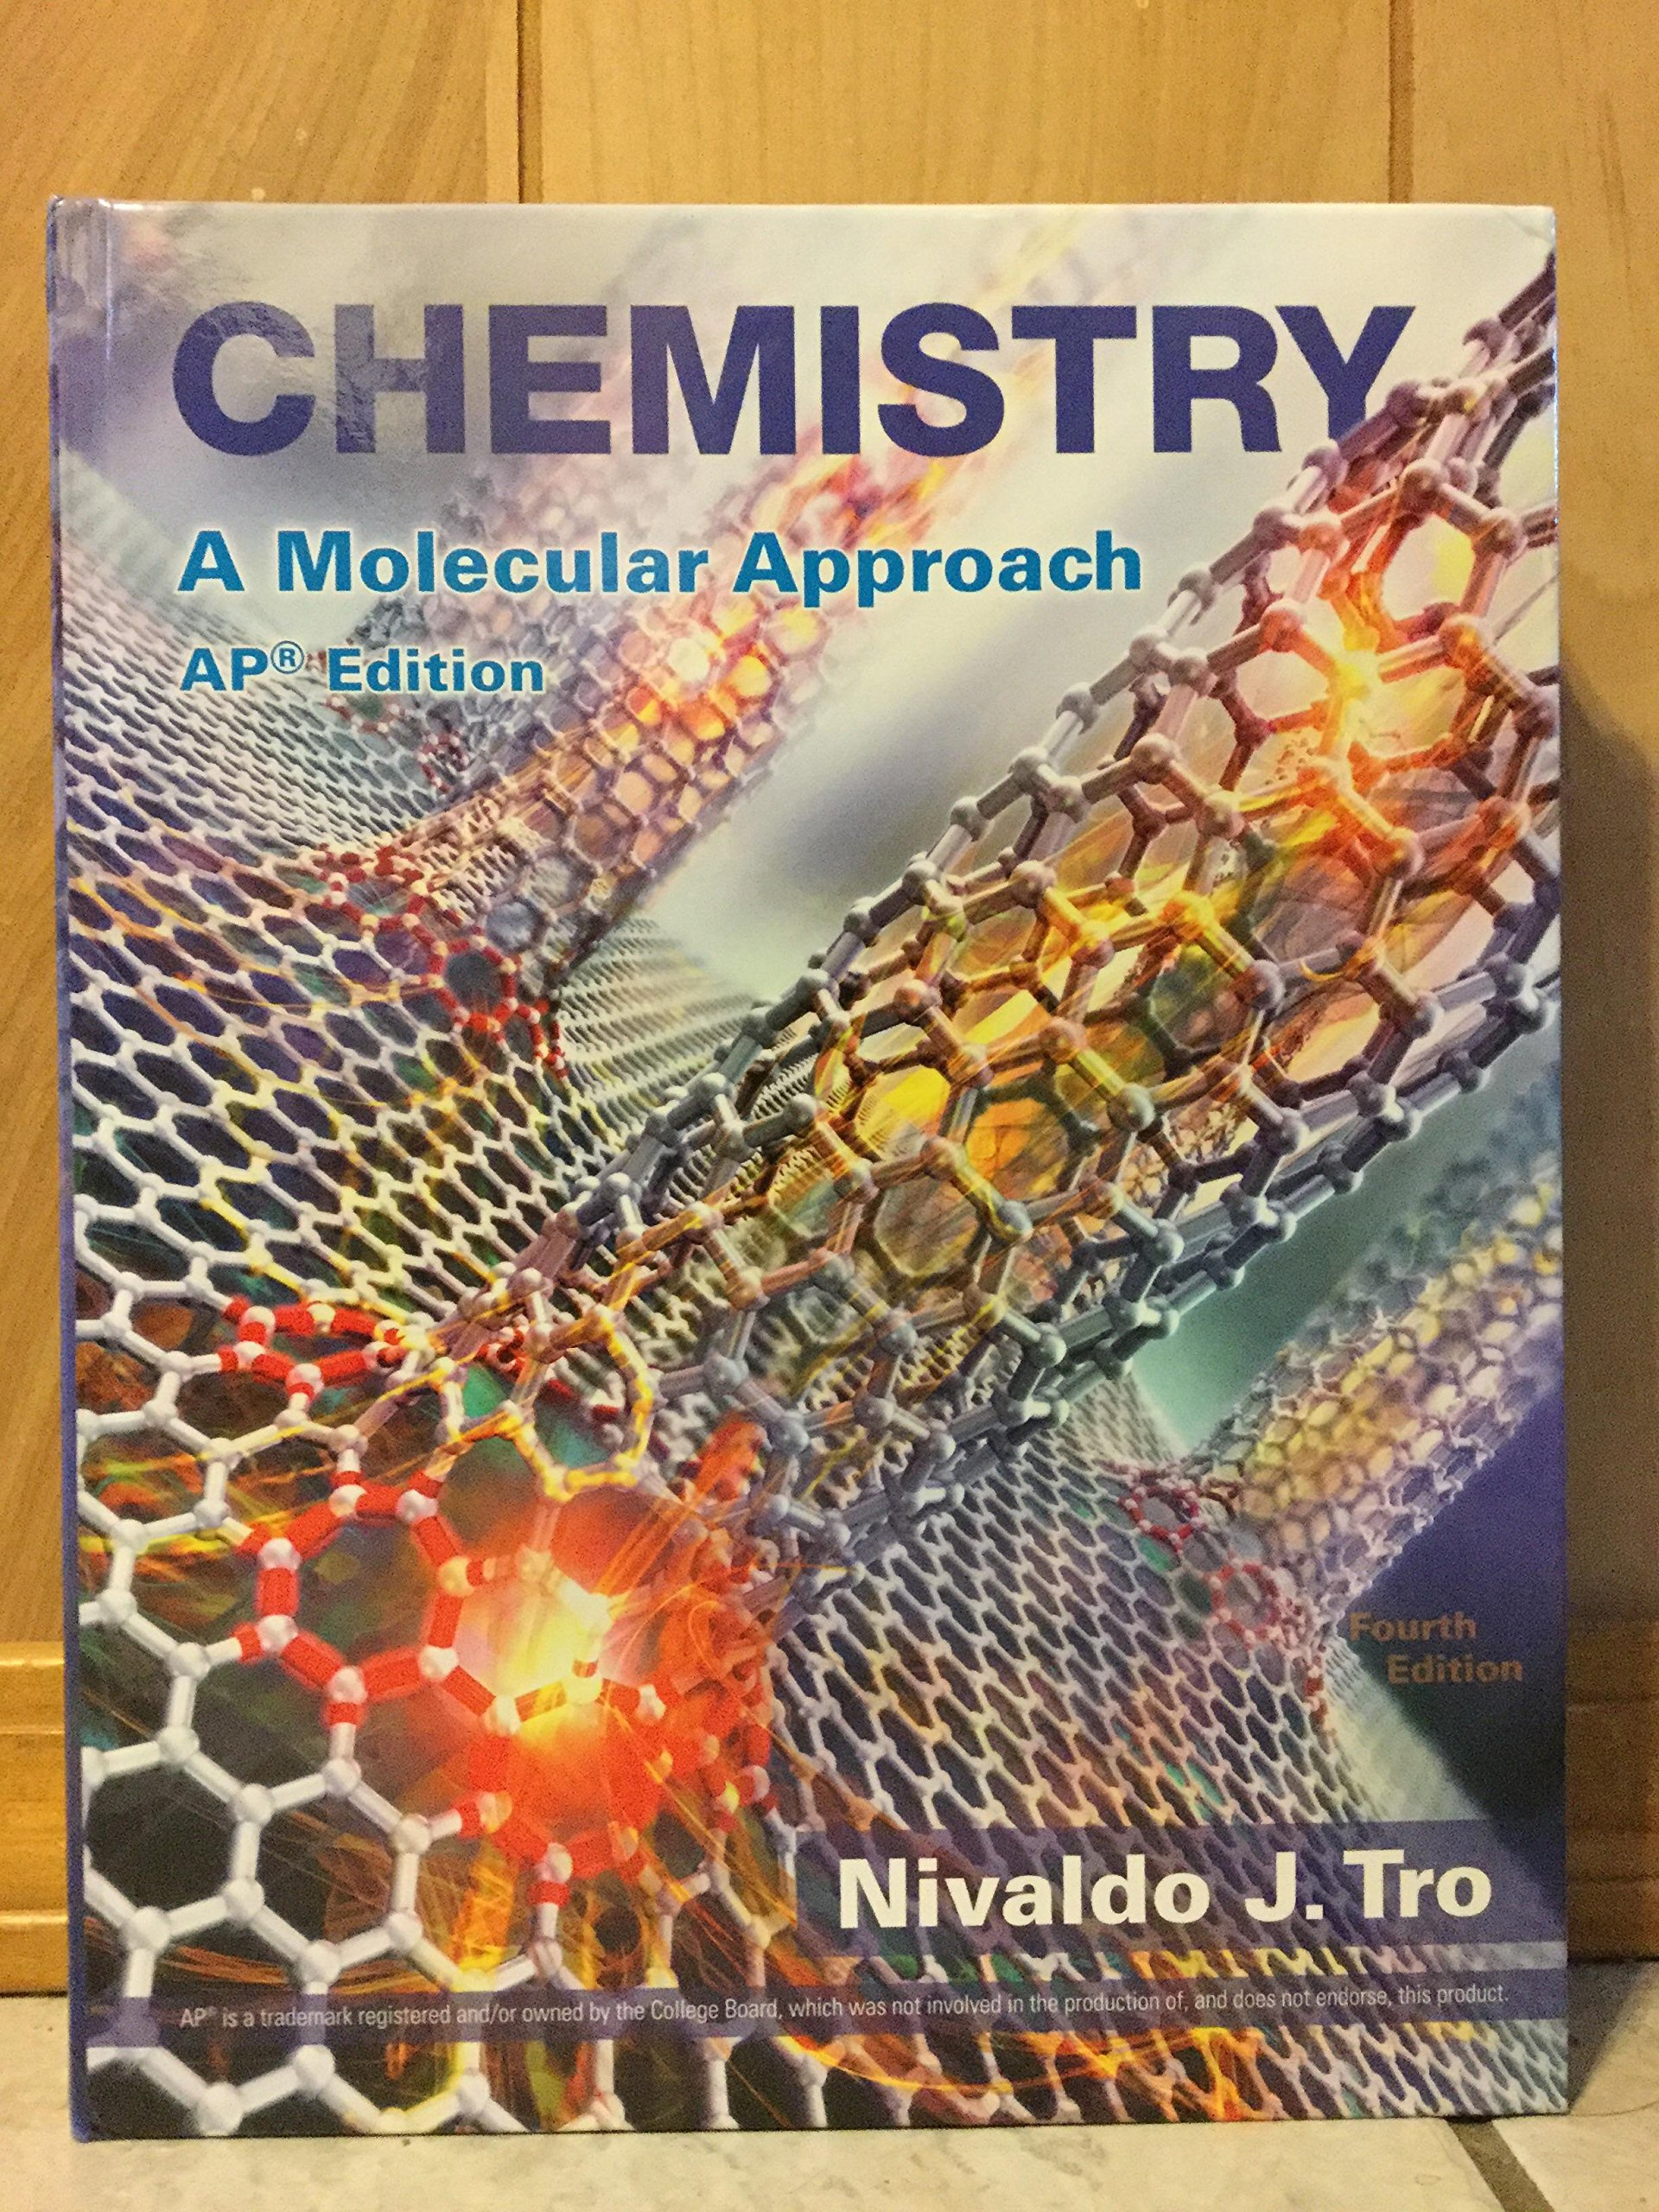 Chemistry A Molecular Approach, AP Edition: Nivaldo J. Tro: 9780134429038:  Amazon.com: Books